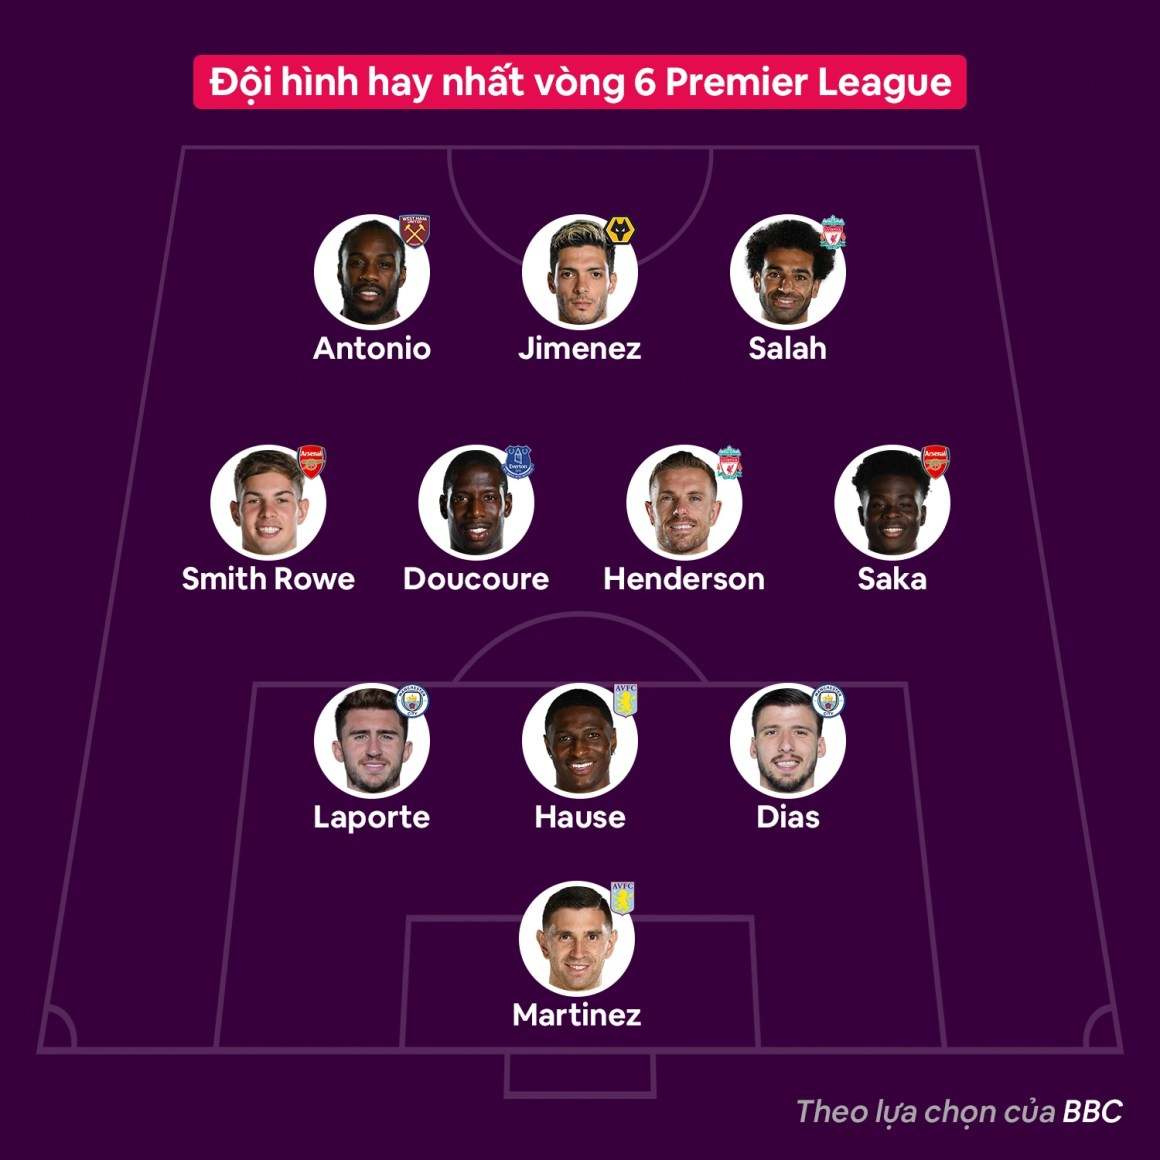 Doi hinh hay nhat vong 6 Premier League anh 1